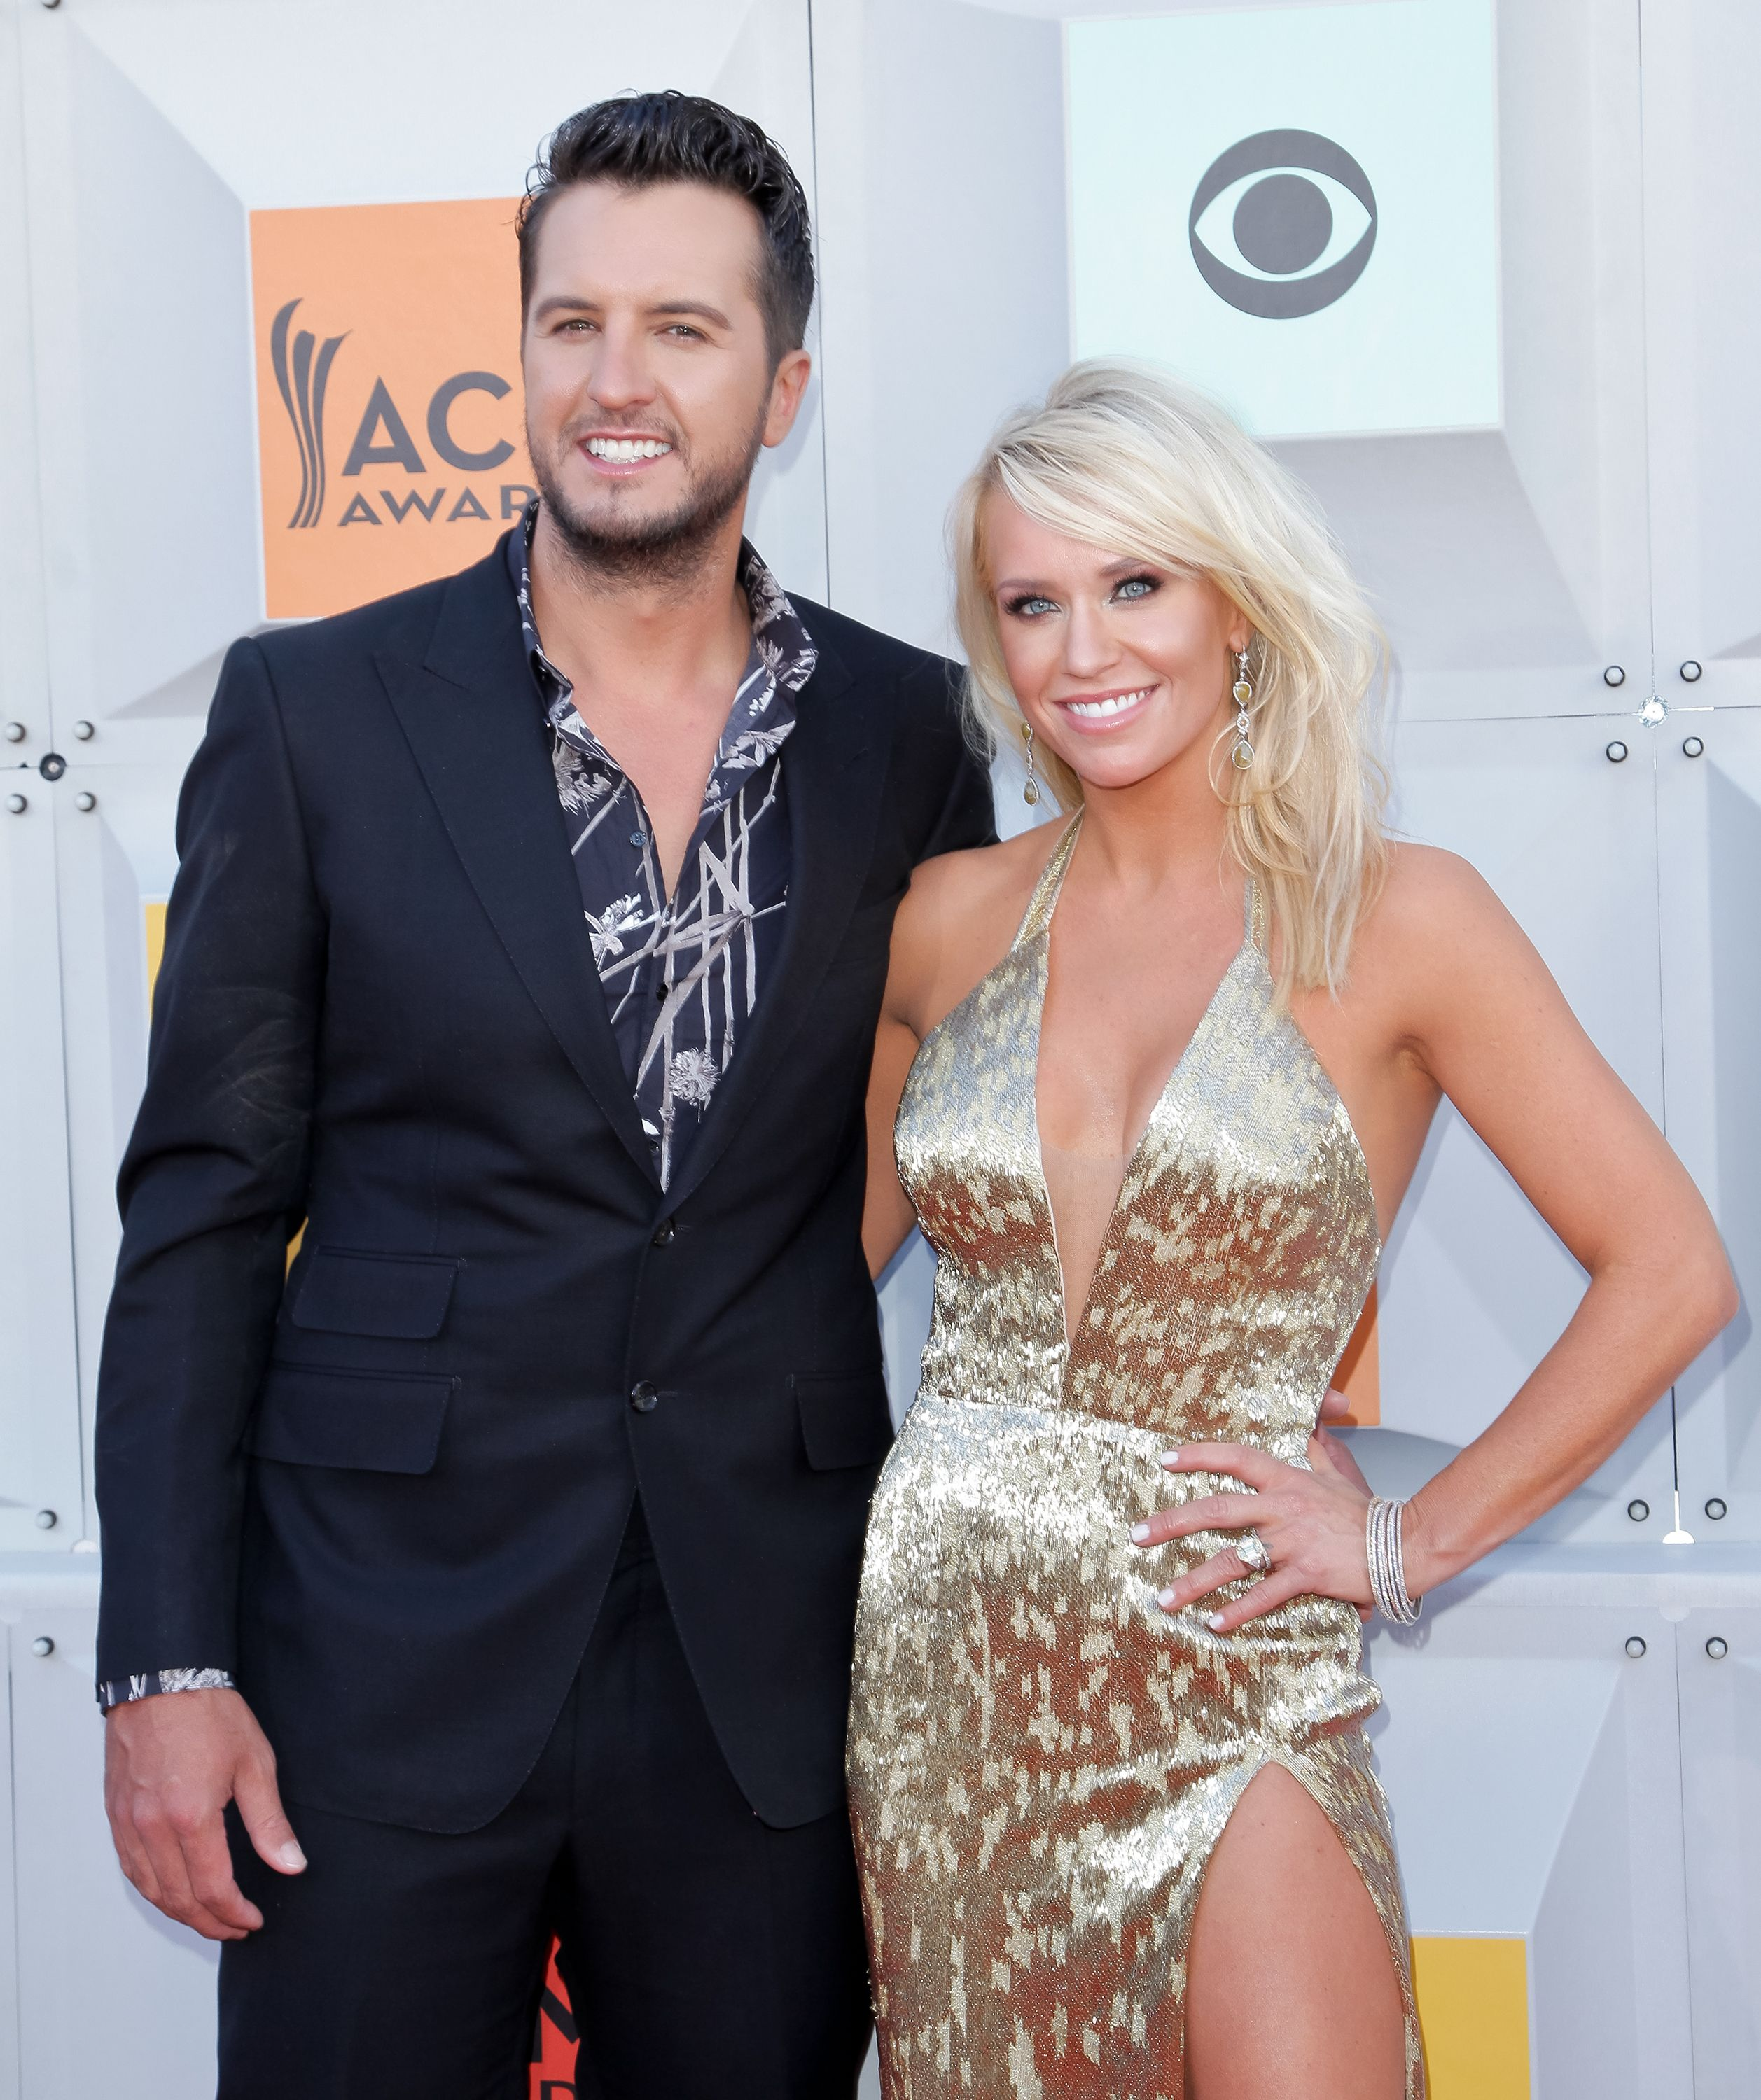 Luke Bryan and Caroline Boyer at the 51st Academy of Country Music Awards at MGM Grand Garden Arena on April 3, 2016, in Las Vegas, Nevada | Photo: Tibrina Hobson/Getty Images